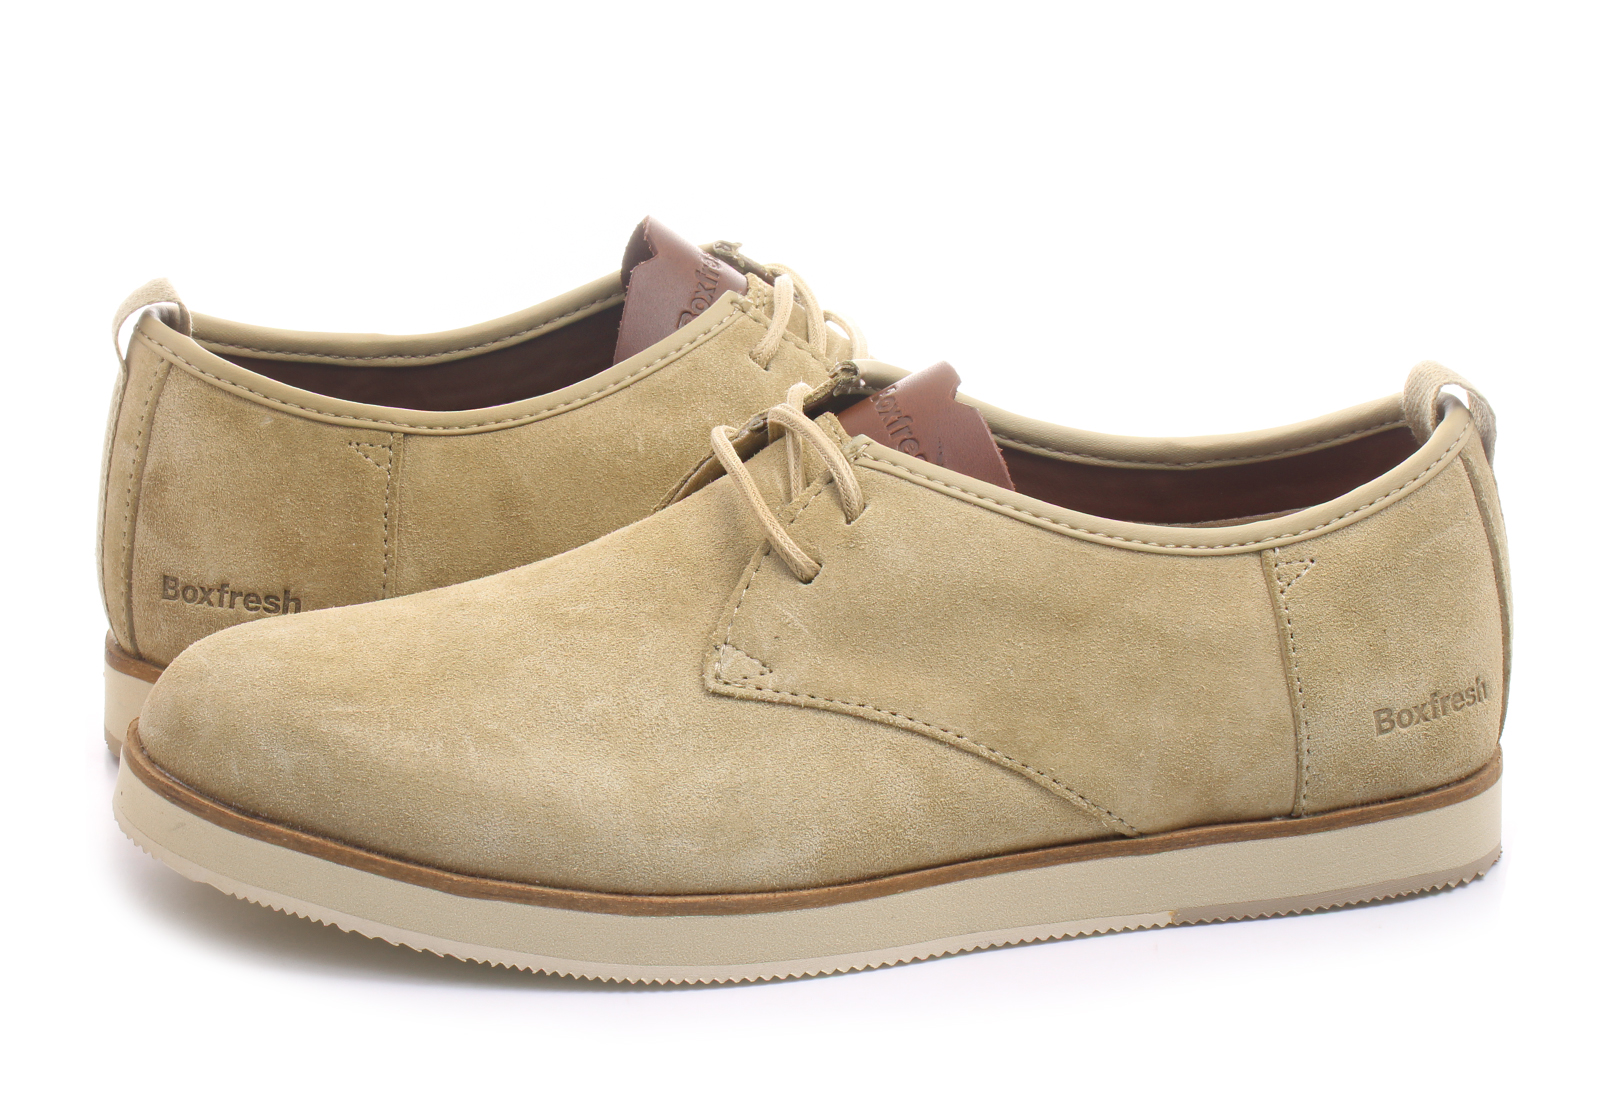 new product 4c58f 14fa1 Boxfresh Shoes - Telmo - E14995-lbr - Online shop for sneakers, shoes and  boots